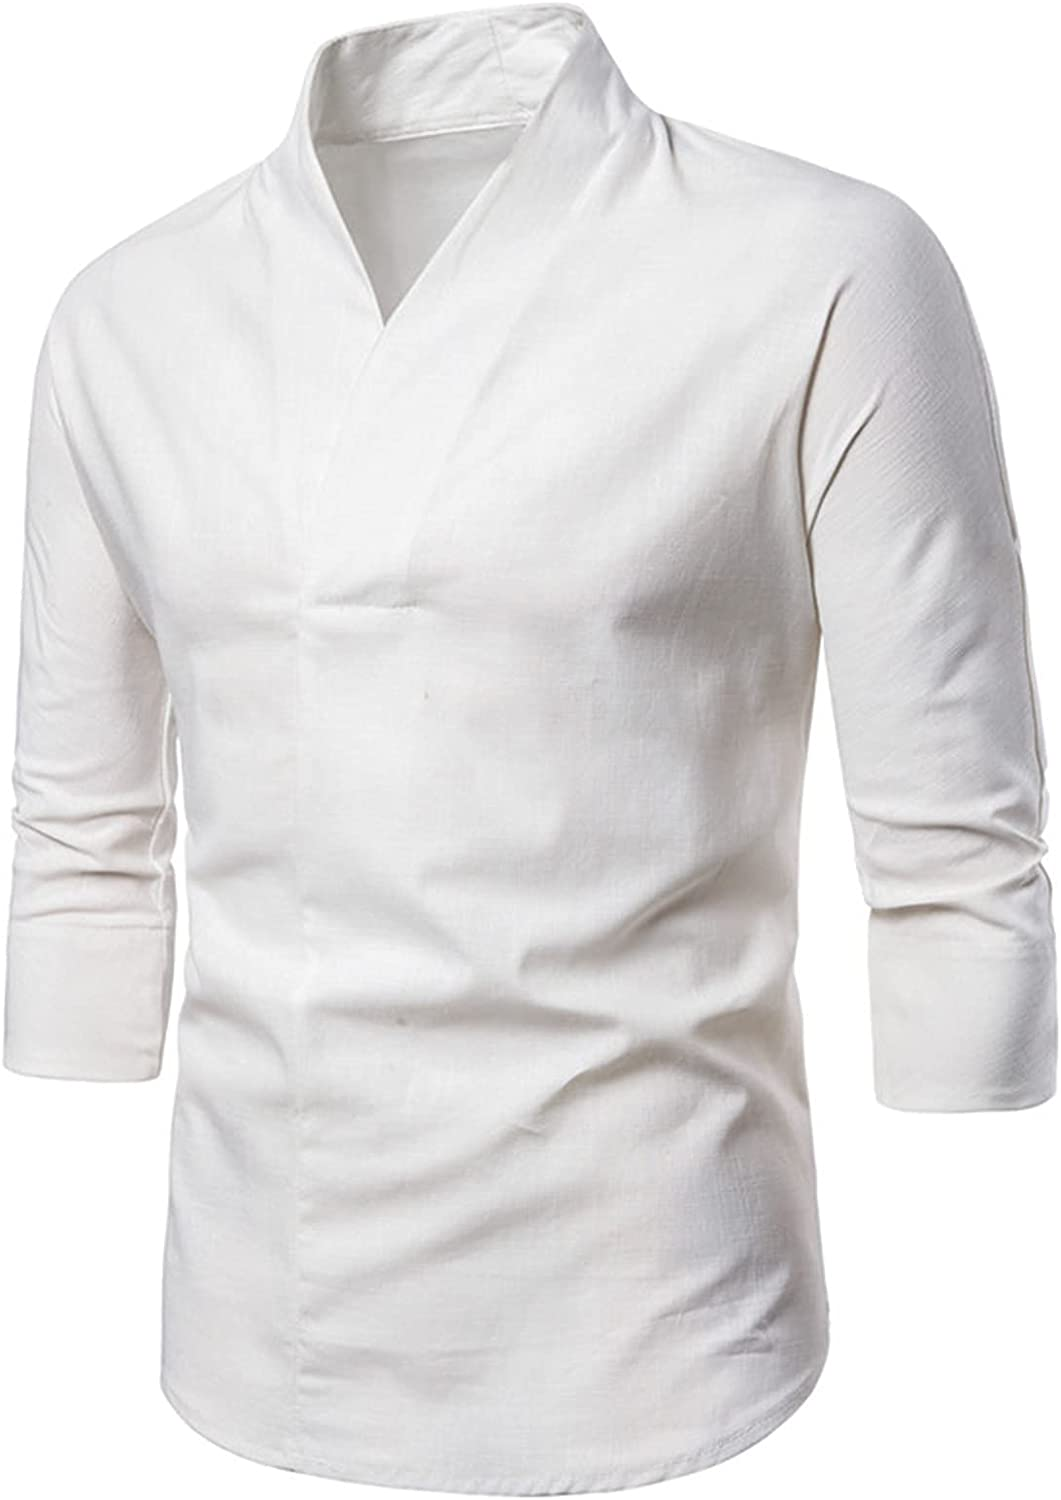 Mens Long Sleeve Dress Shirts Regular Fit Casual Business Work Henly Shirt Fashion V Neck Pullover Tops